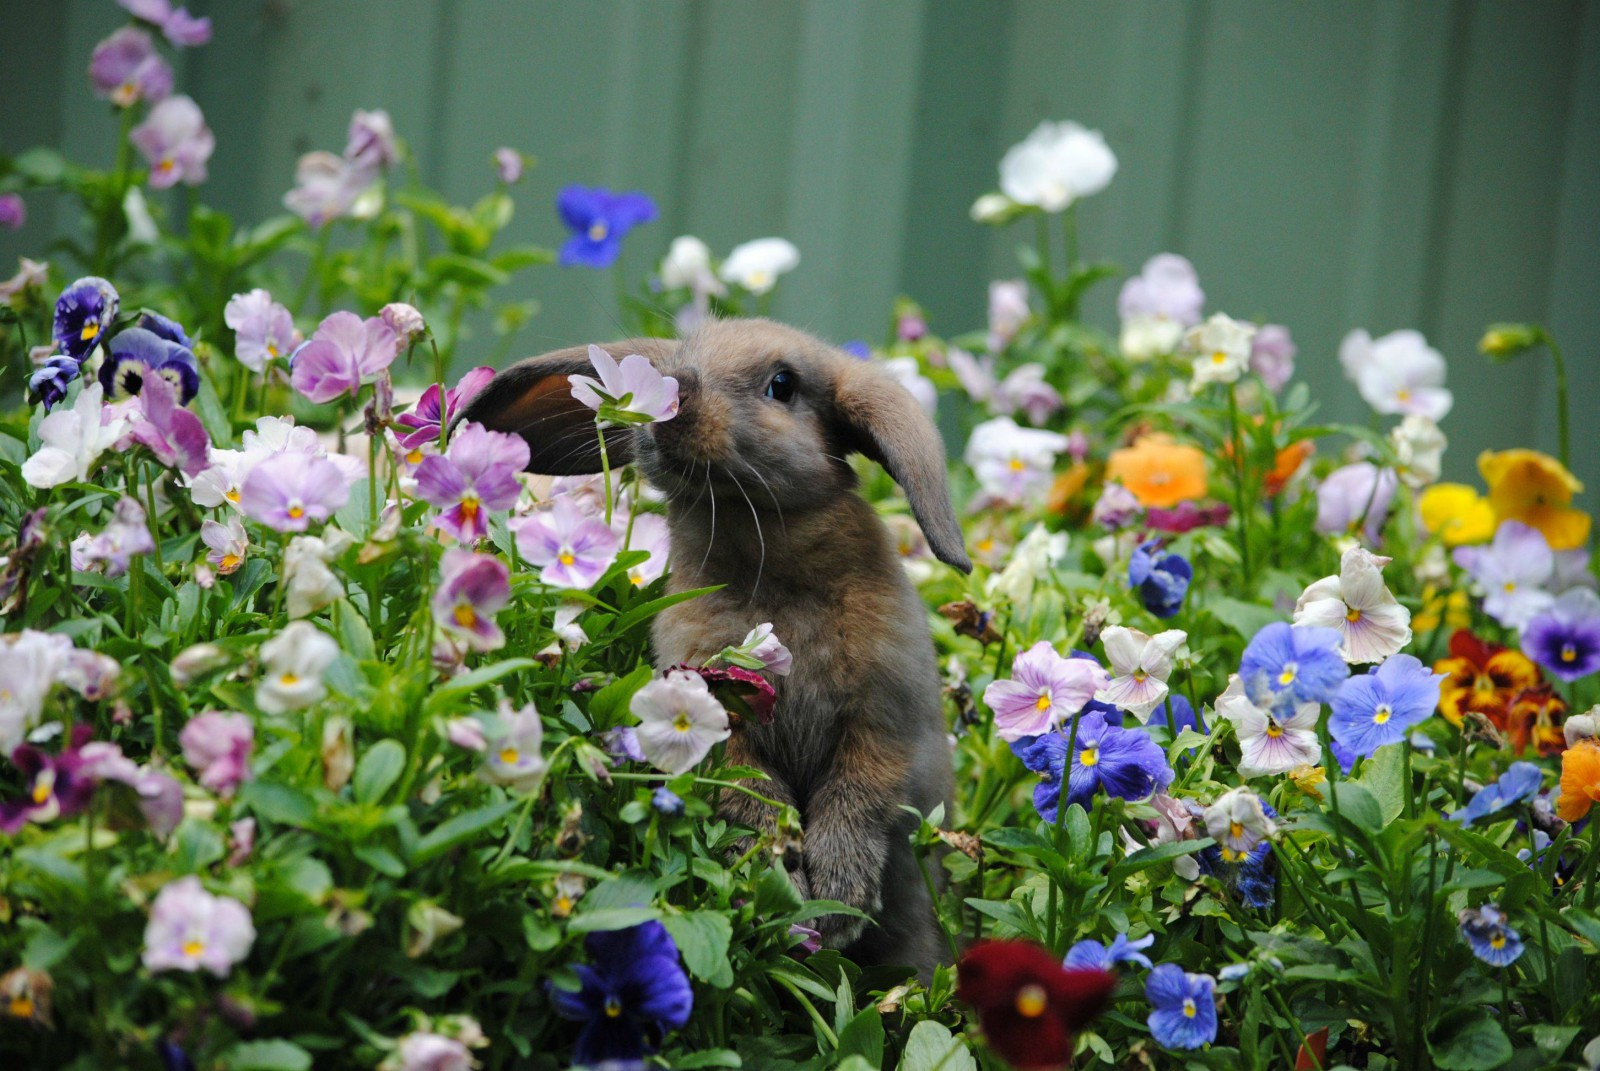 Bunny_smelling_flowers-1600x1071